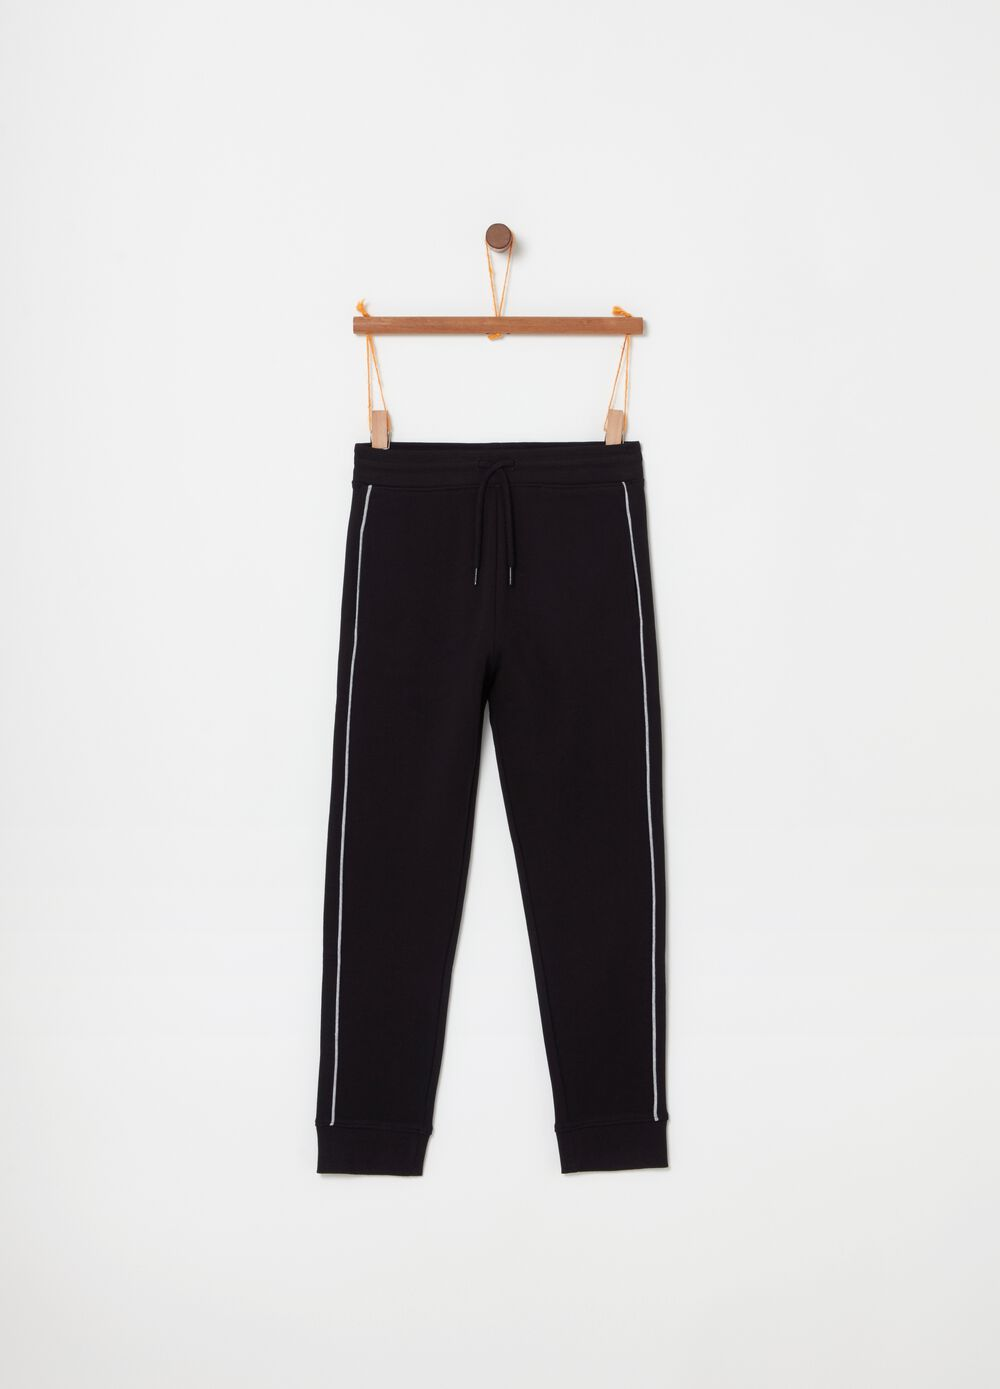 Pyjama trousers with contrasting edging